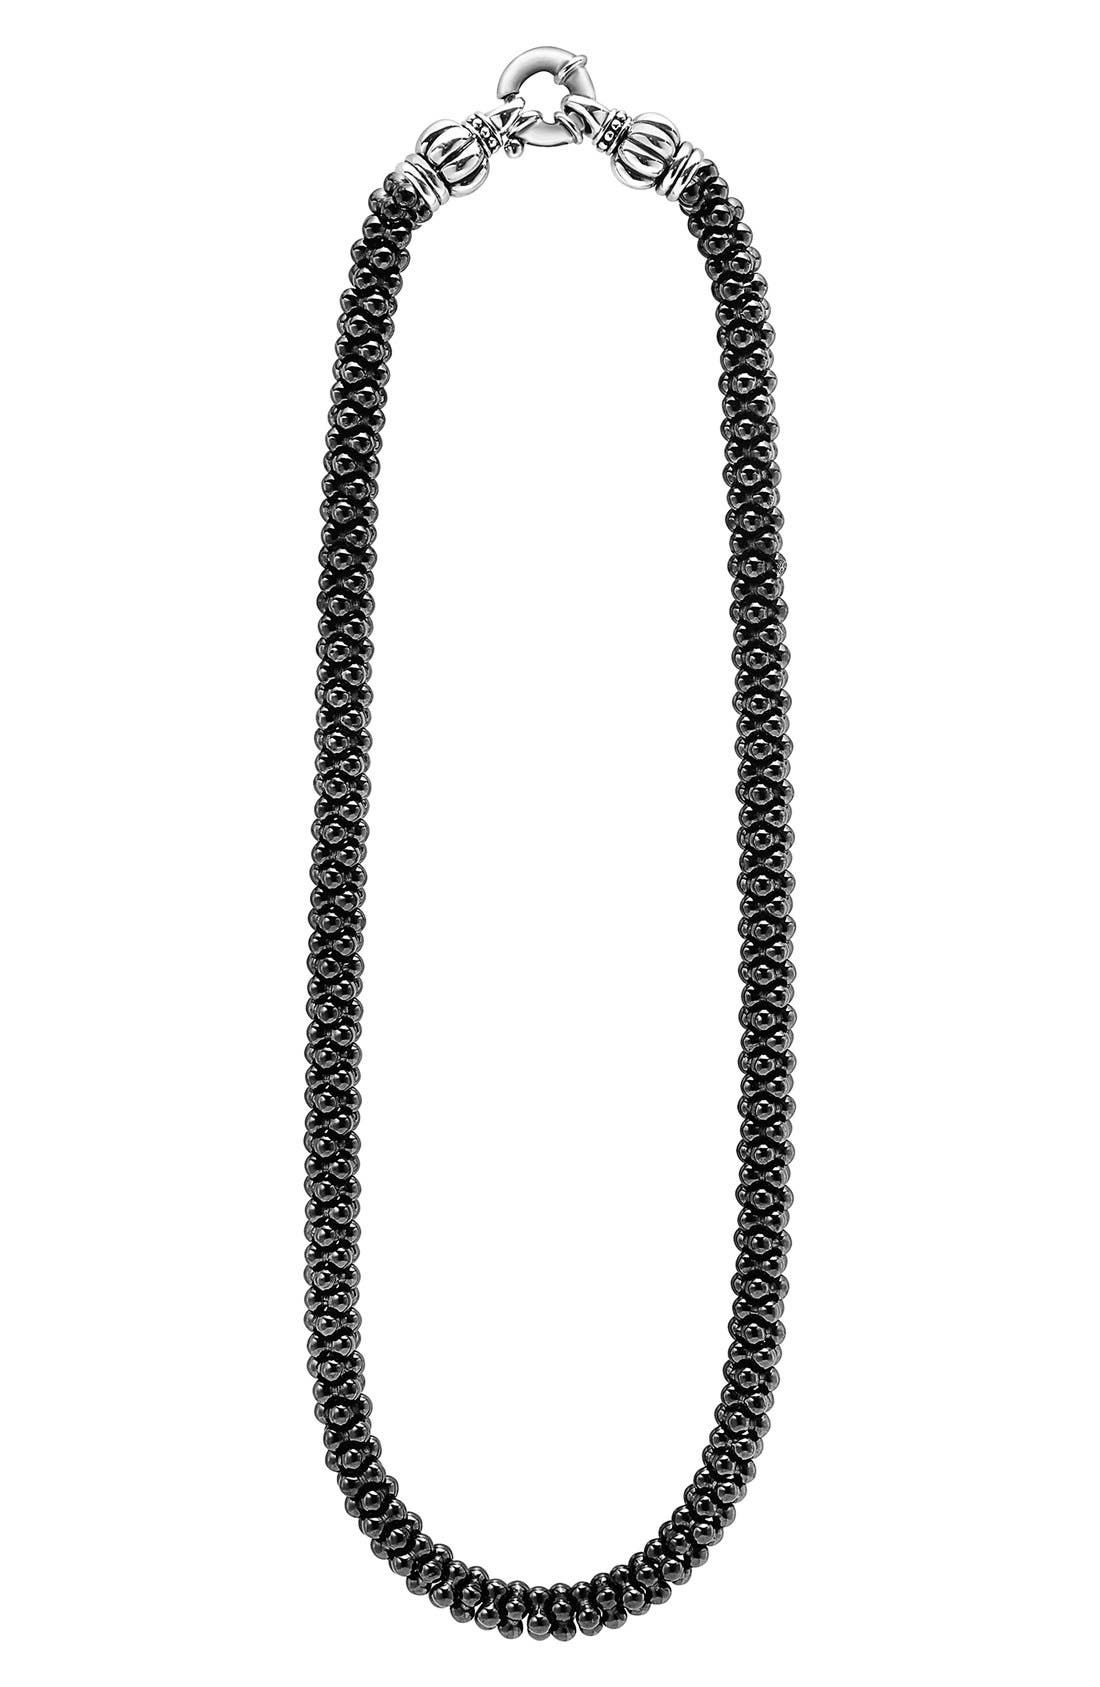 LAGOS 'Black Caviar' 7mm Beaded Necklace